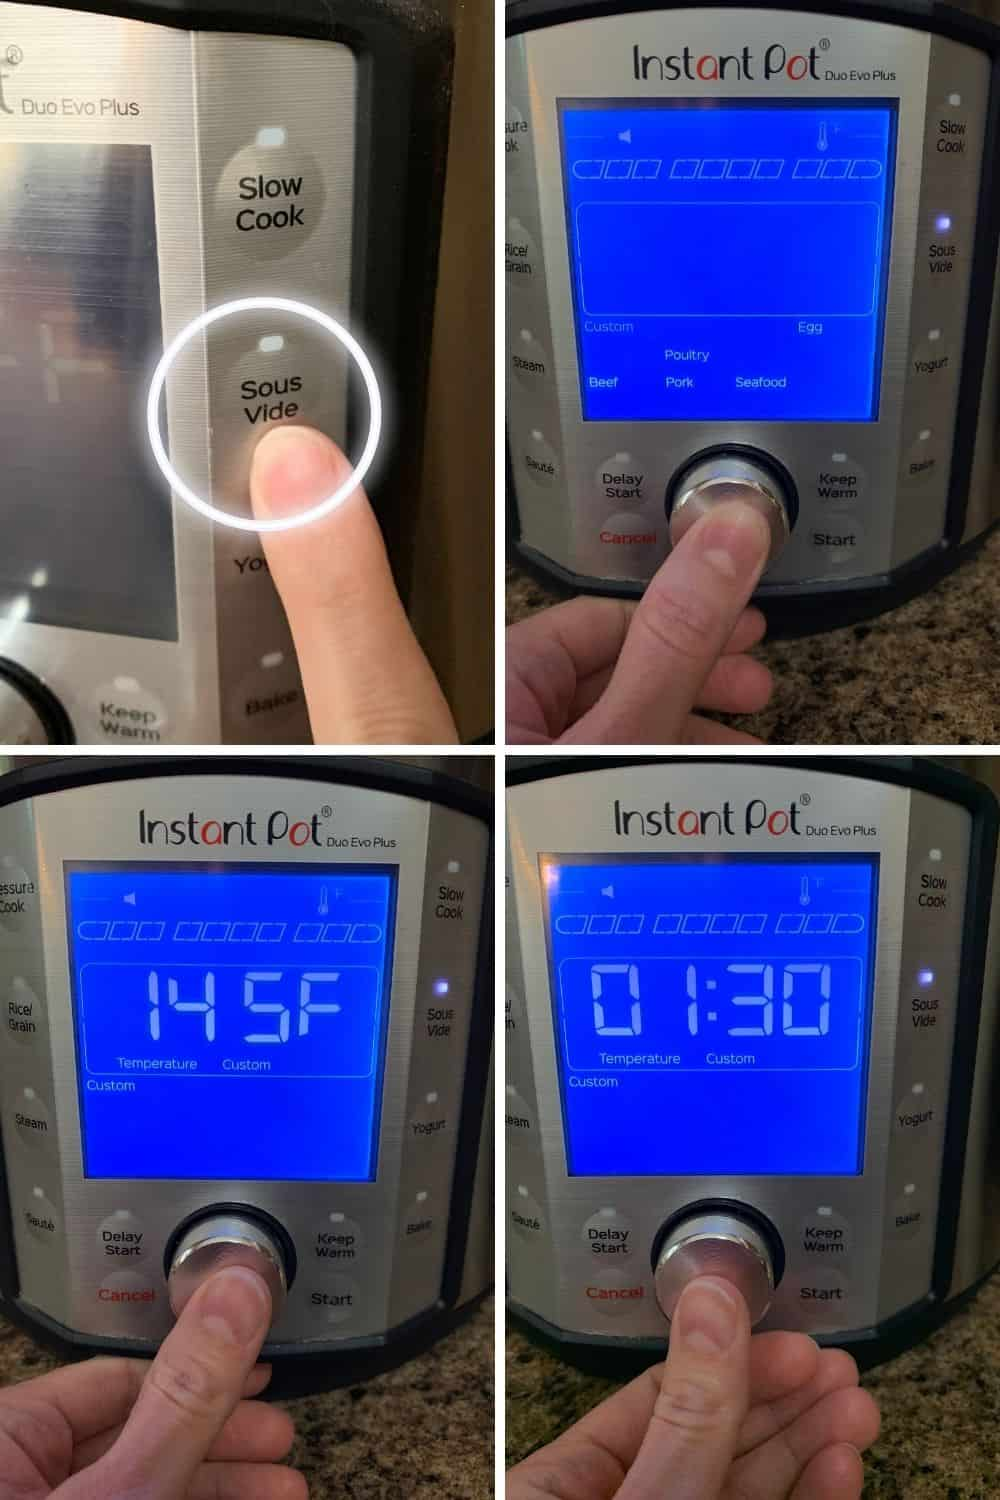 collage image showing the steps for using the Instant Pot sous vide program on the Instant Pot Duo Evo Plus.